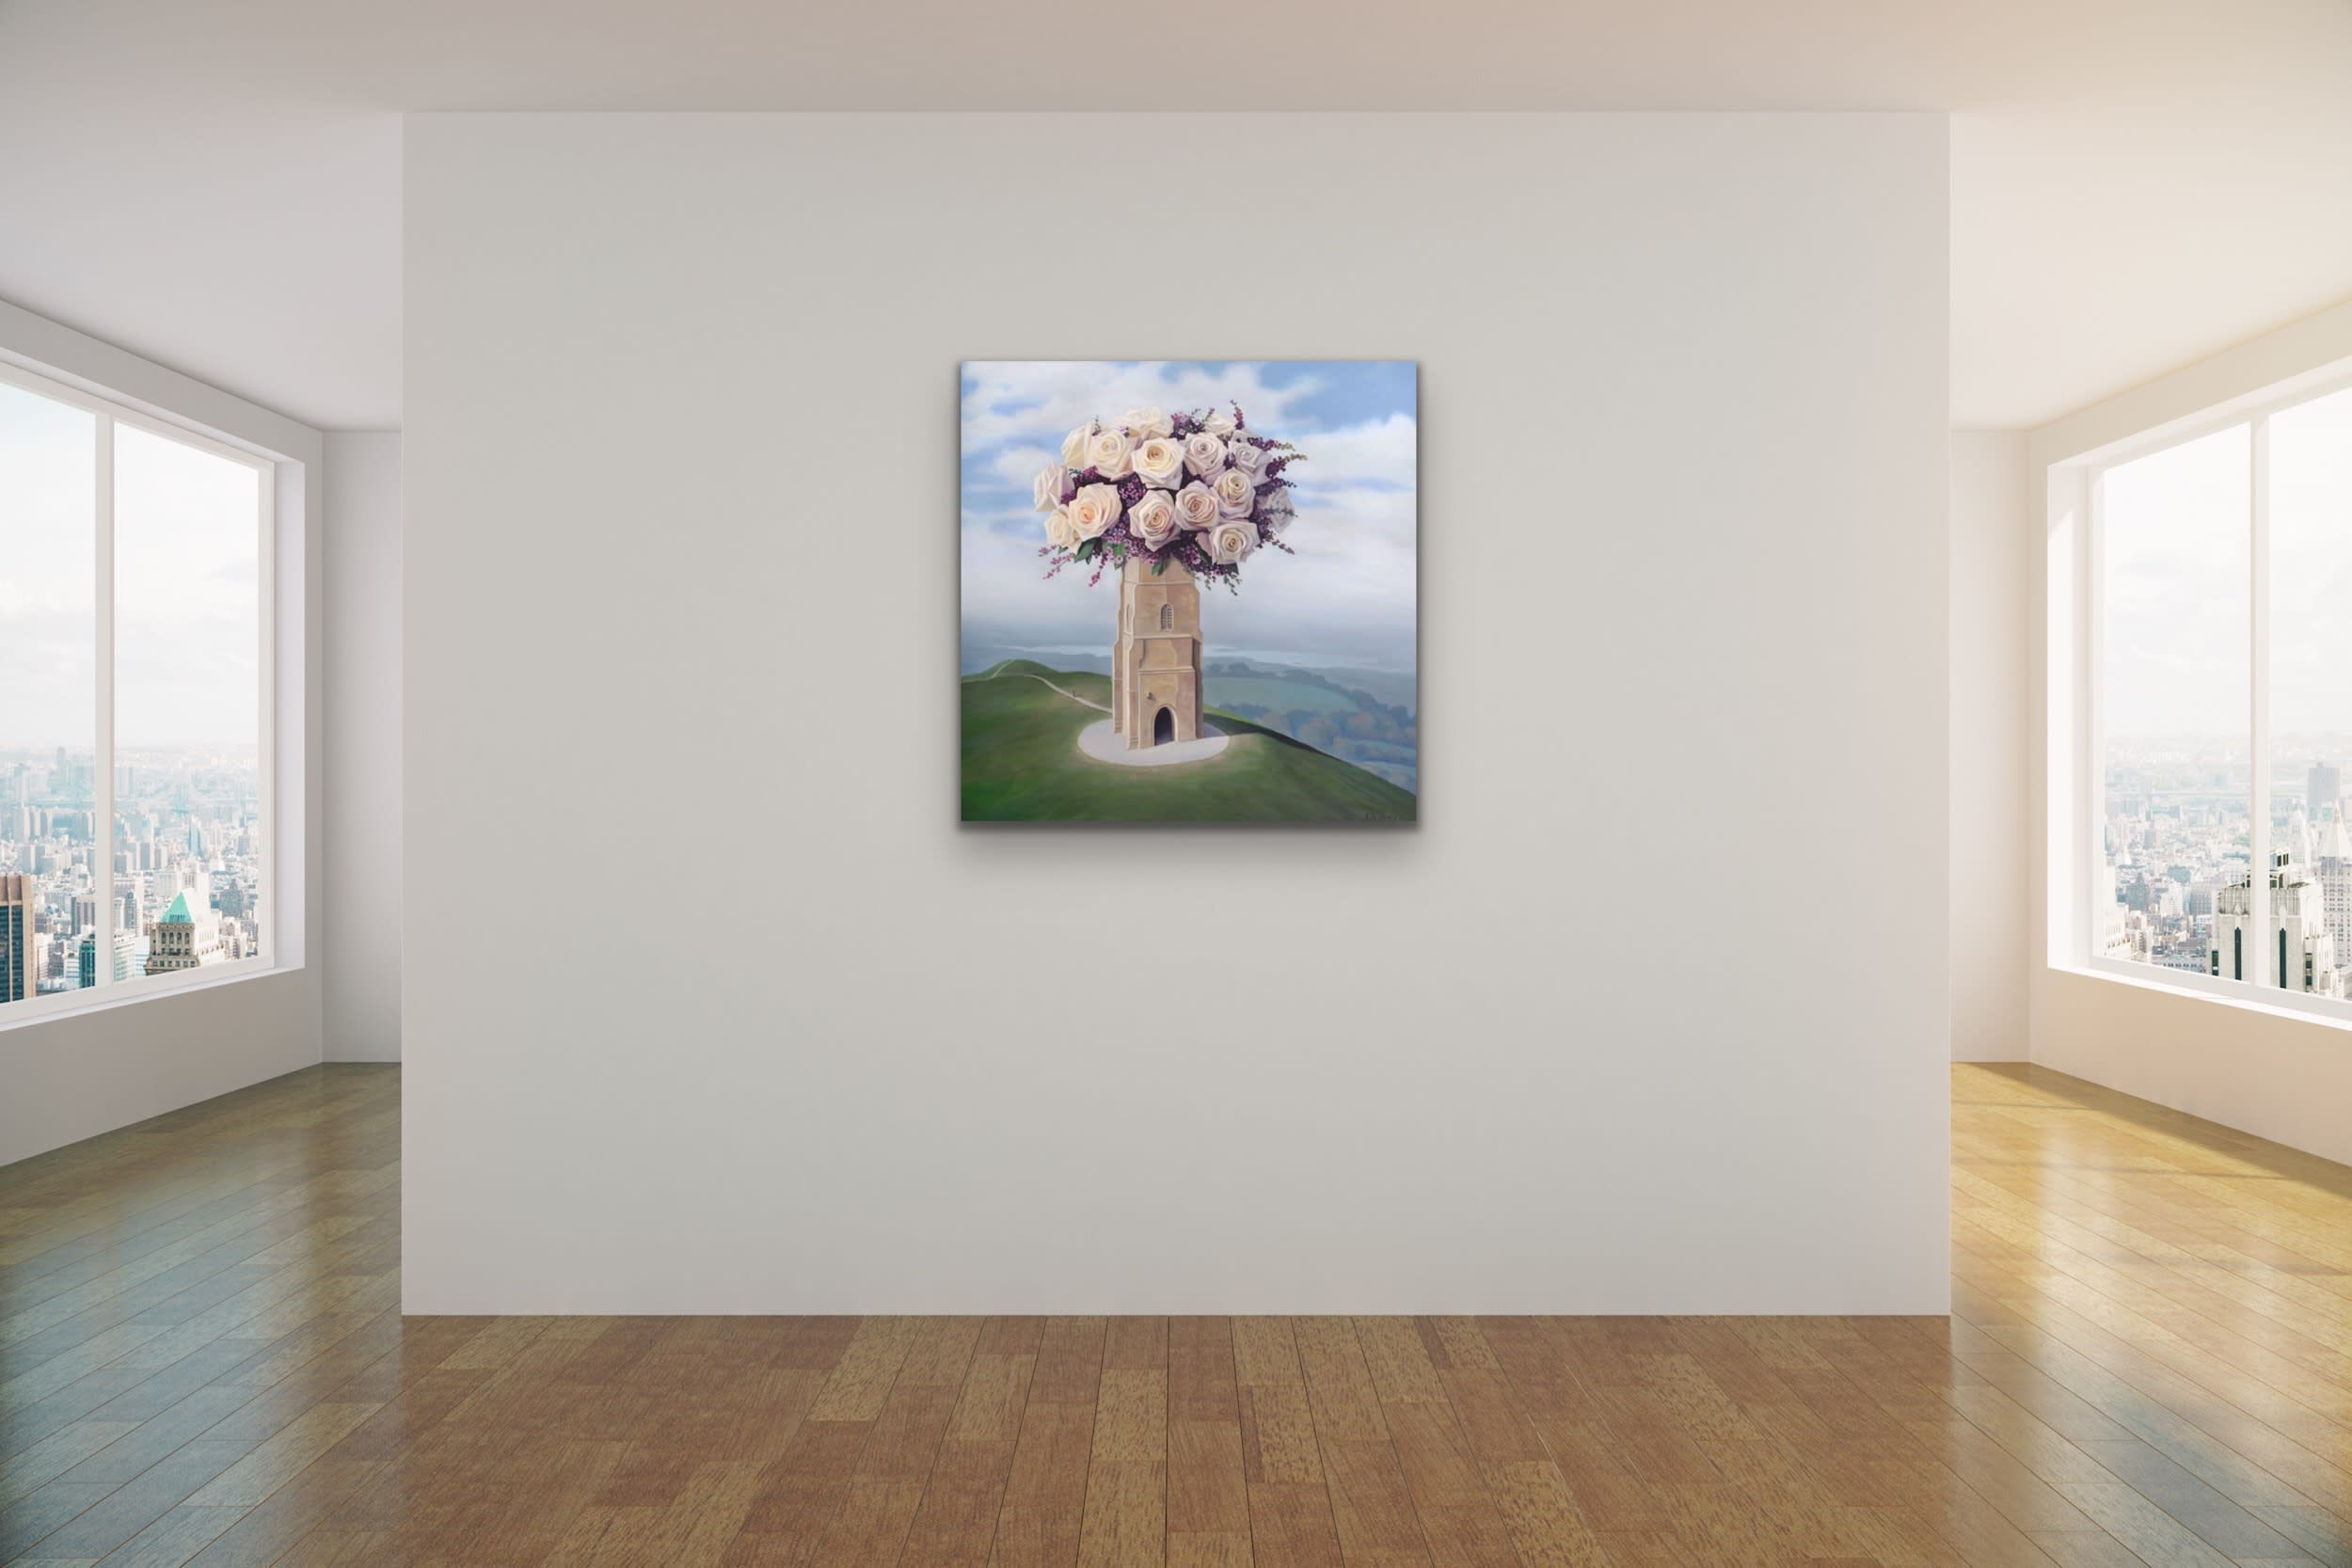 <div class='title'>           Paul Bond Magical Realism Poetry Serene Landscape Animals Nature Surreal Metaphorical Whimsical Fantasy Evo Art Maui Lahaina Front Street Art Gallery 8         </div>